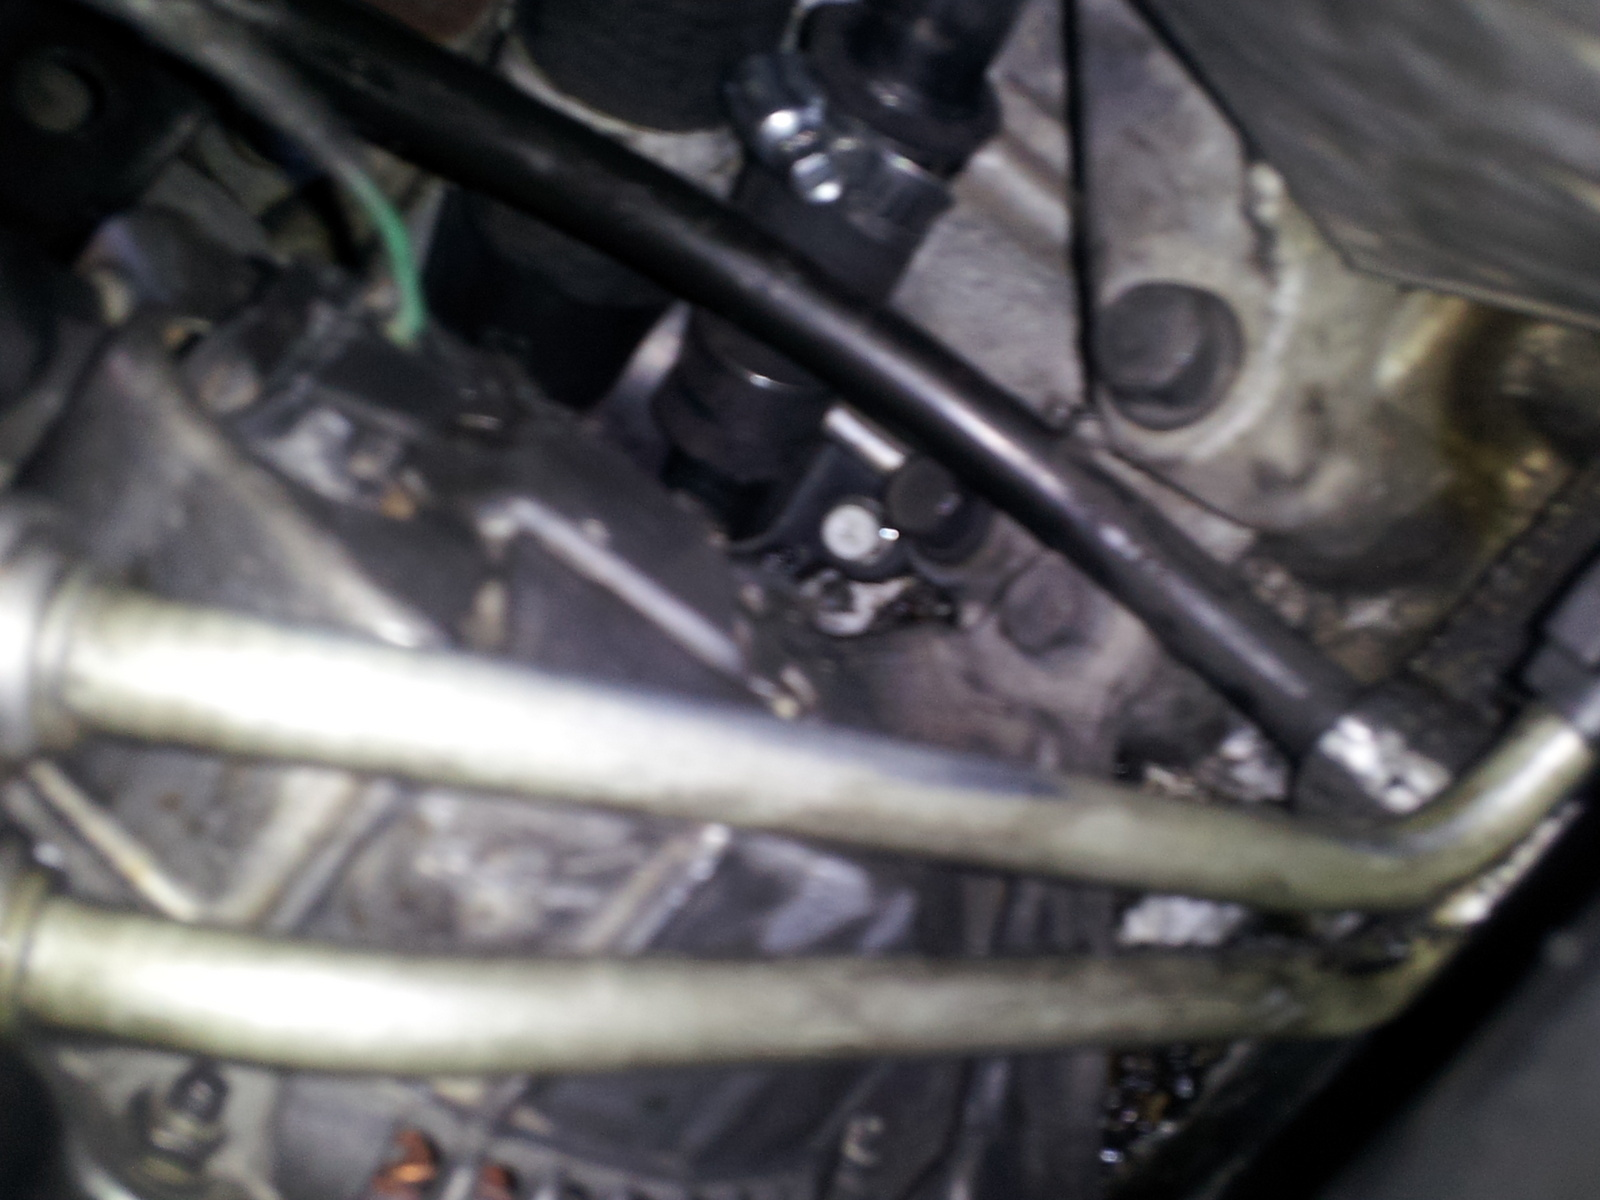 97 Sebring Engine Diagram Wiring Library 27 Have A Little Hole That Keeps Leaking Coolant From The Motor Its